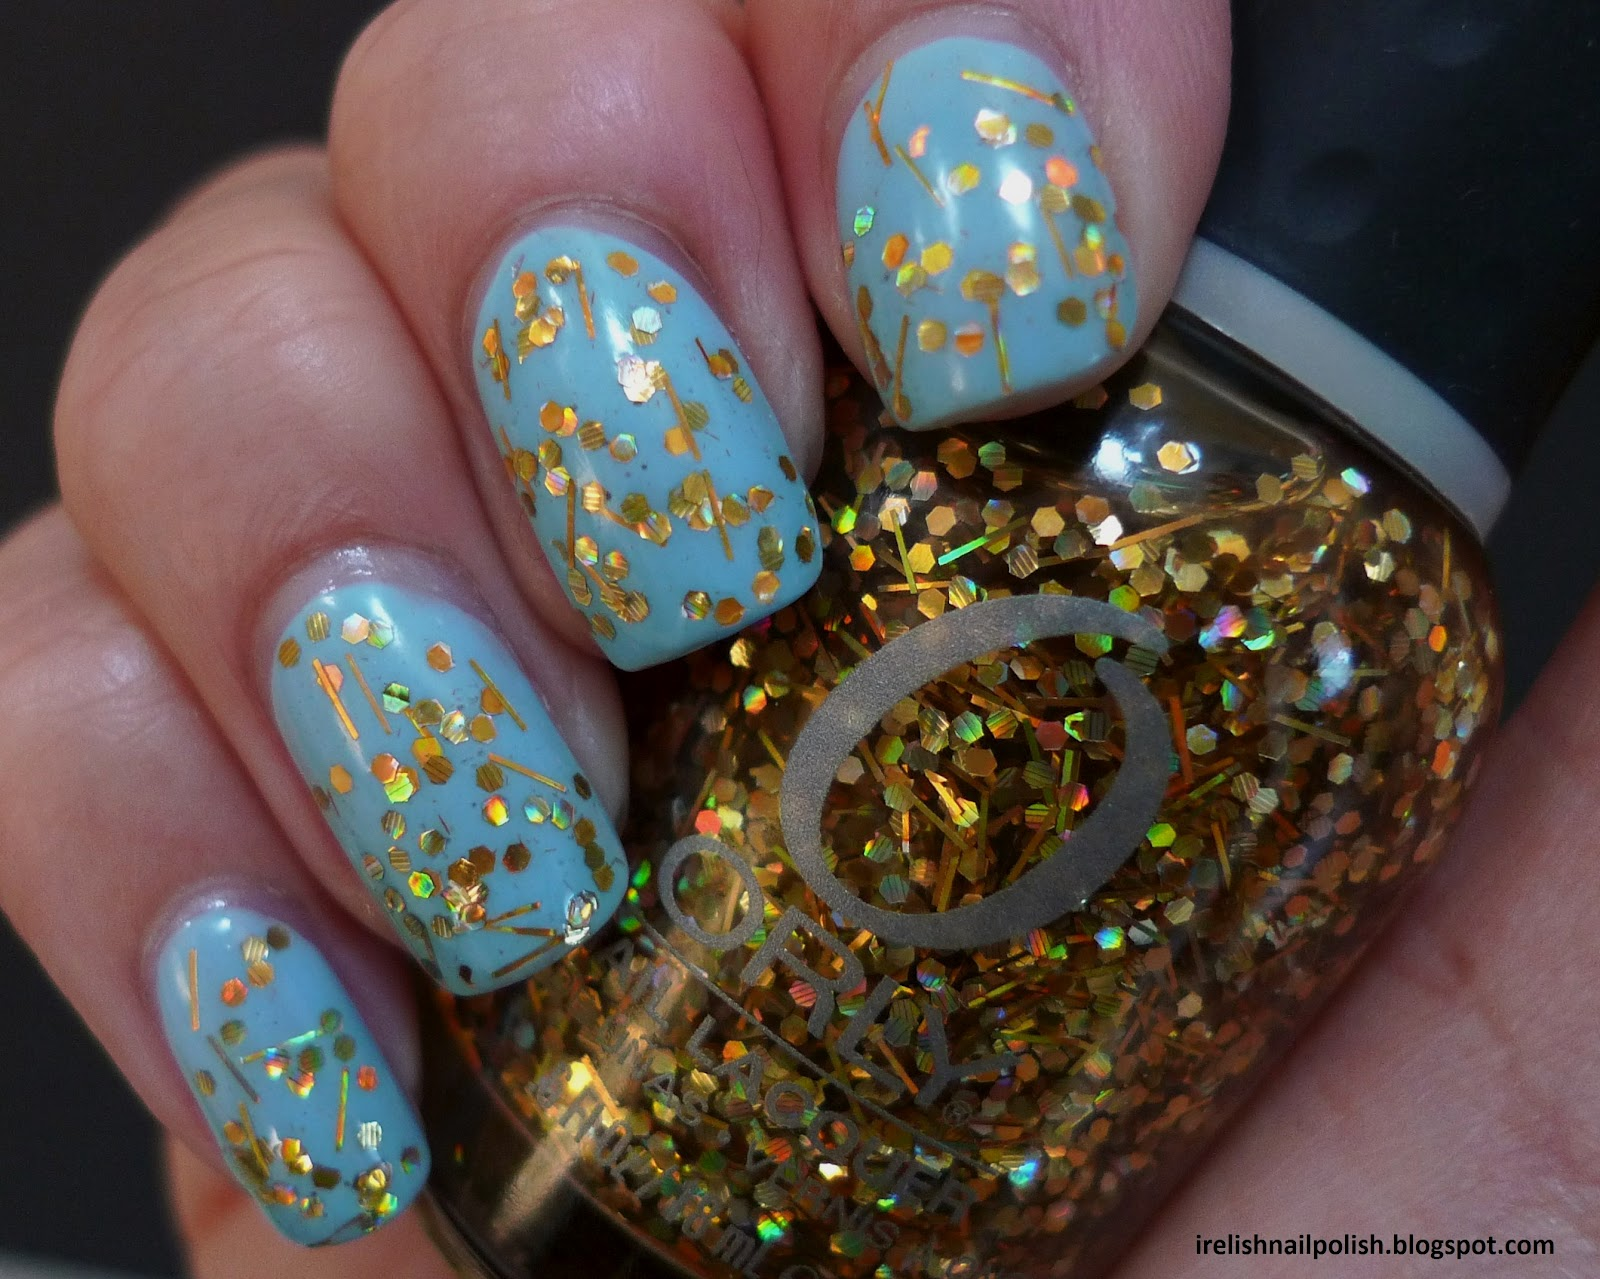 Sashay My Way A Holographic Gold Hex And Bar Glitter In Clear Base This Is One Coat Over Three Coats Of Color Club S Factory